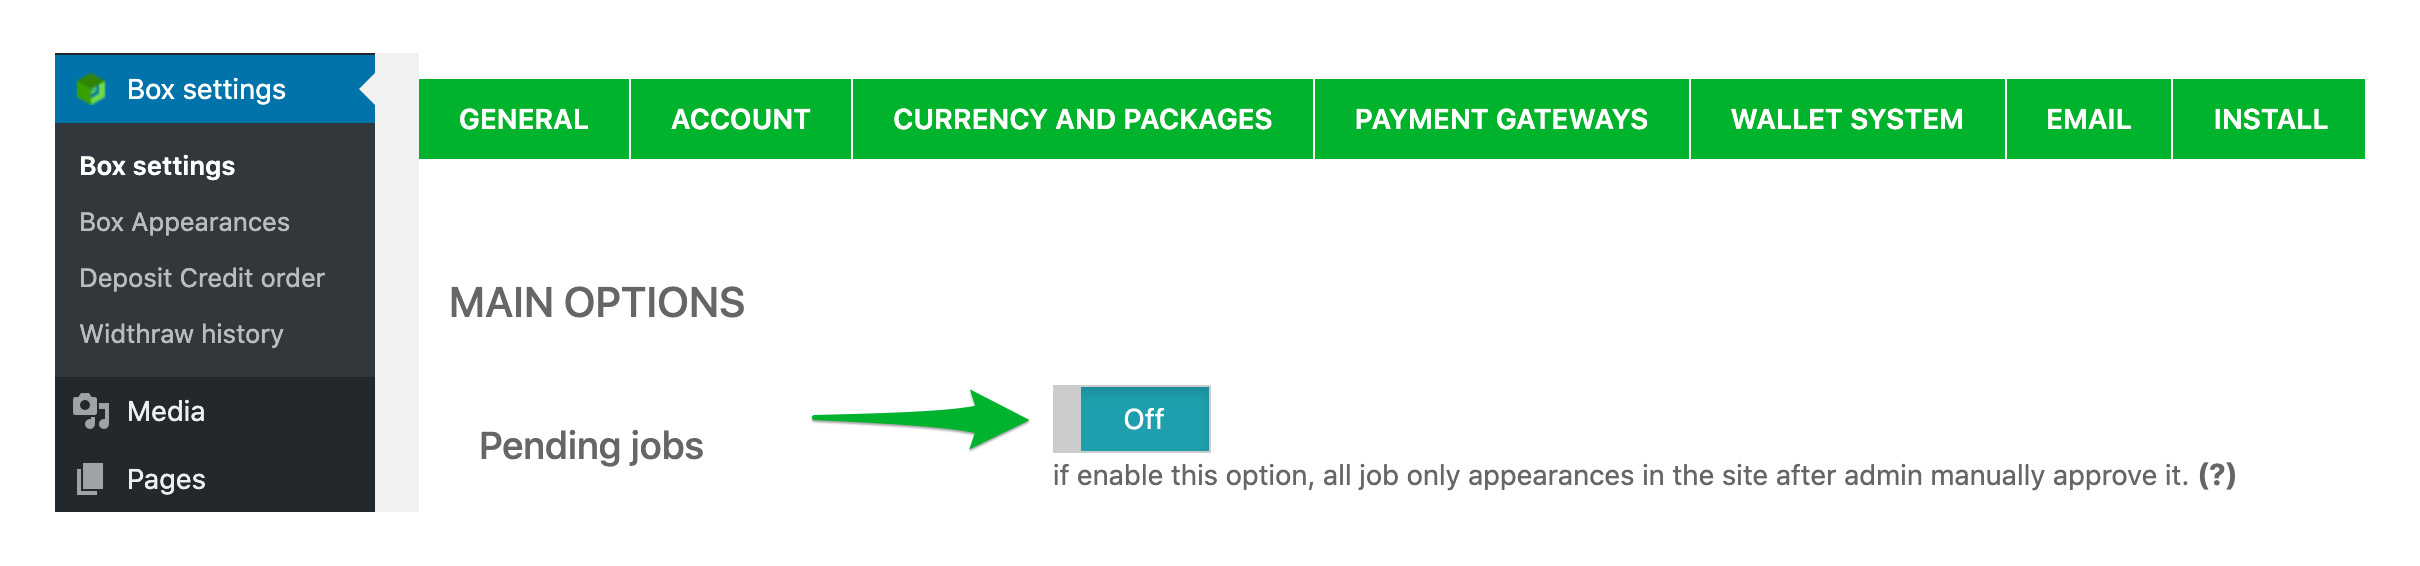 How to Post a Project in WPFreelance Theme - Pending jobs